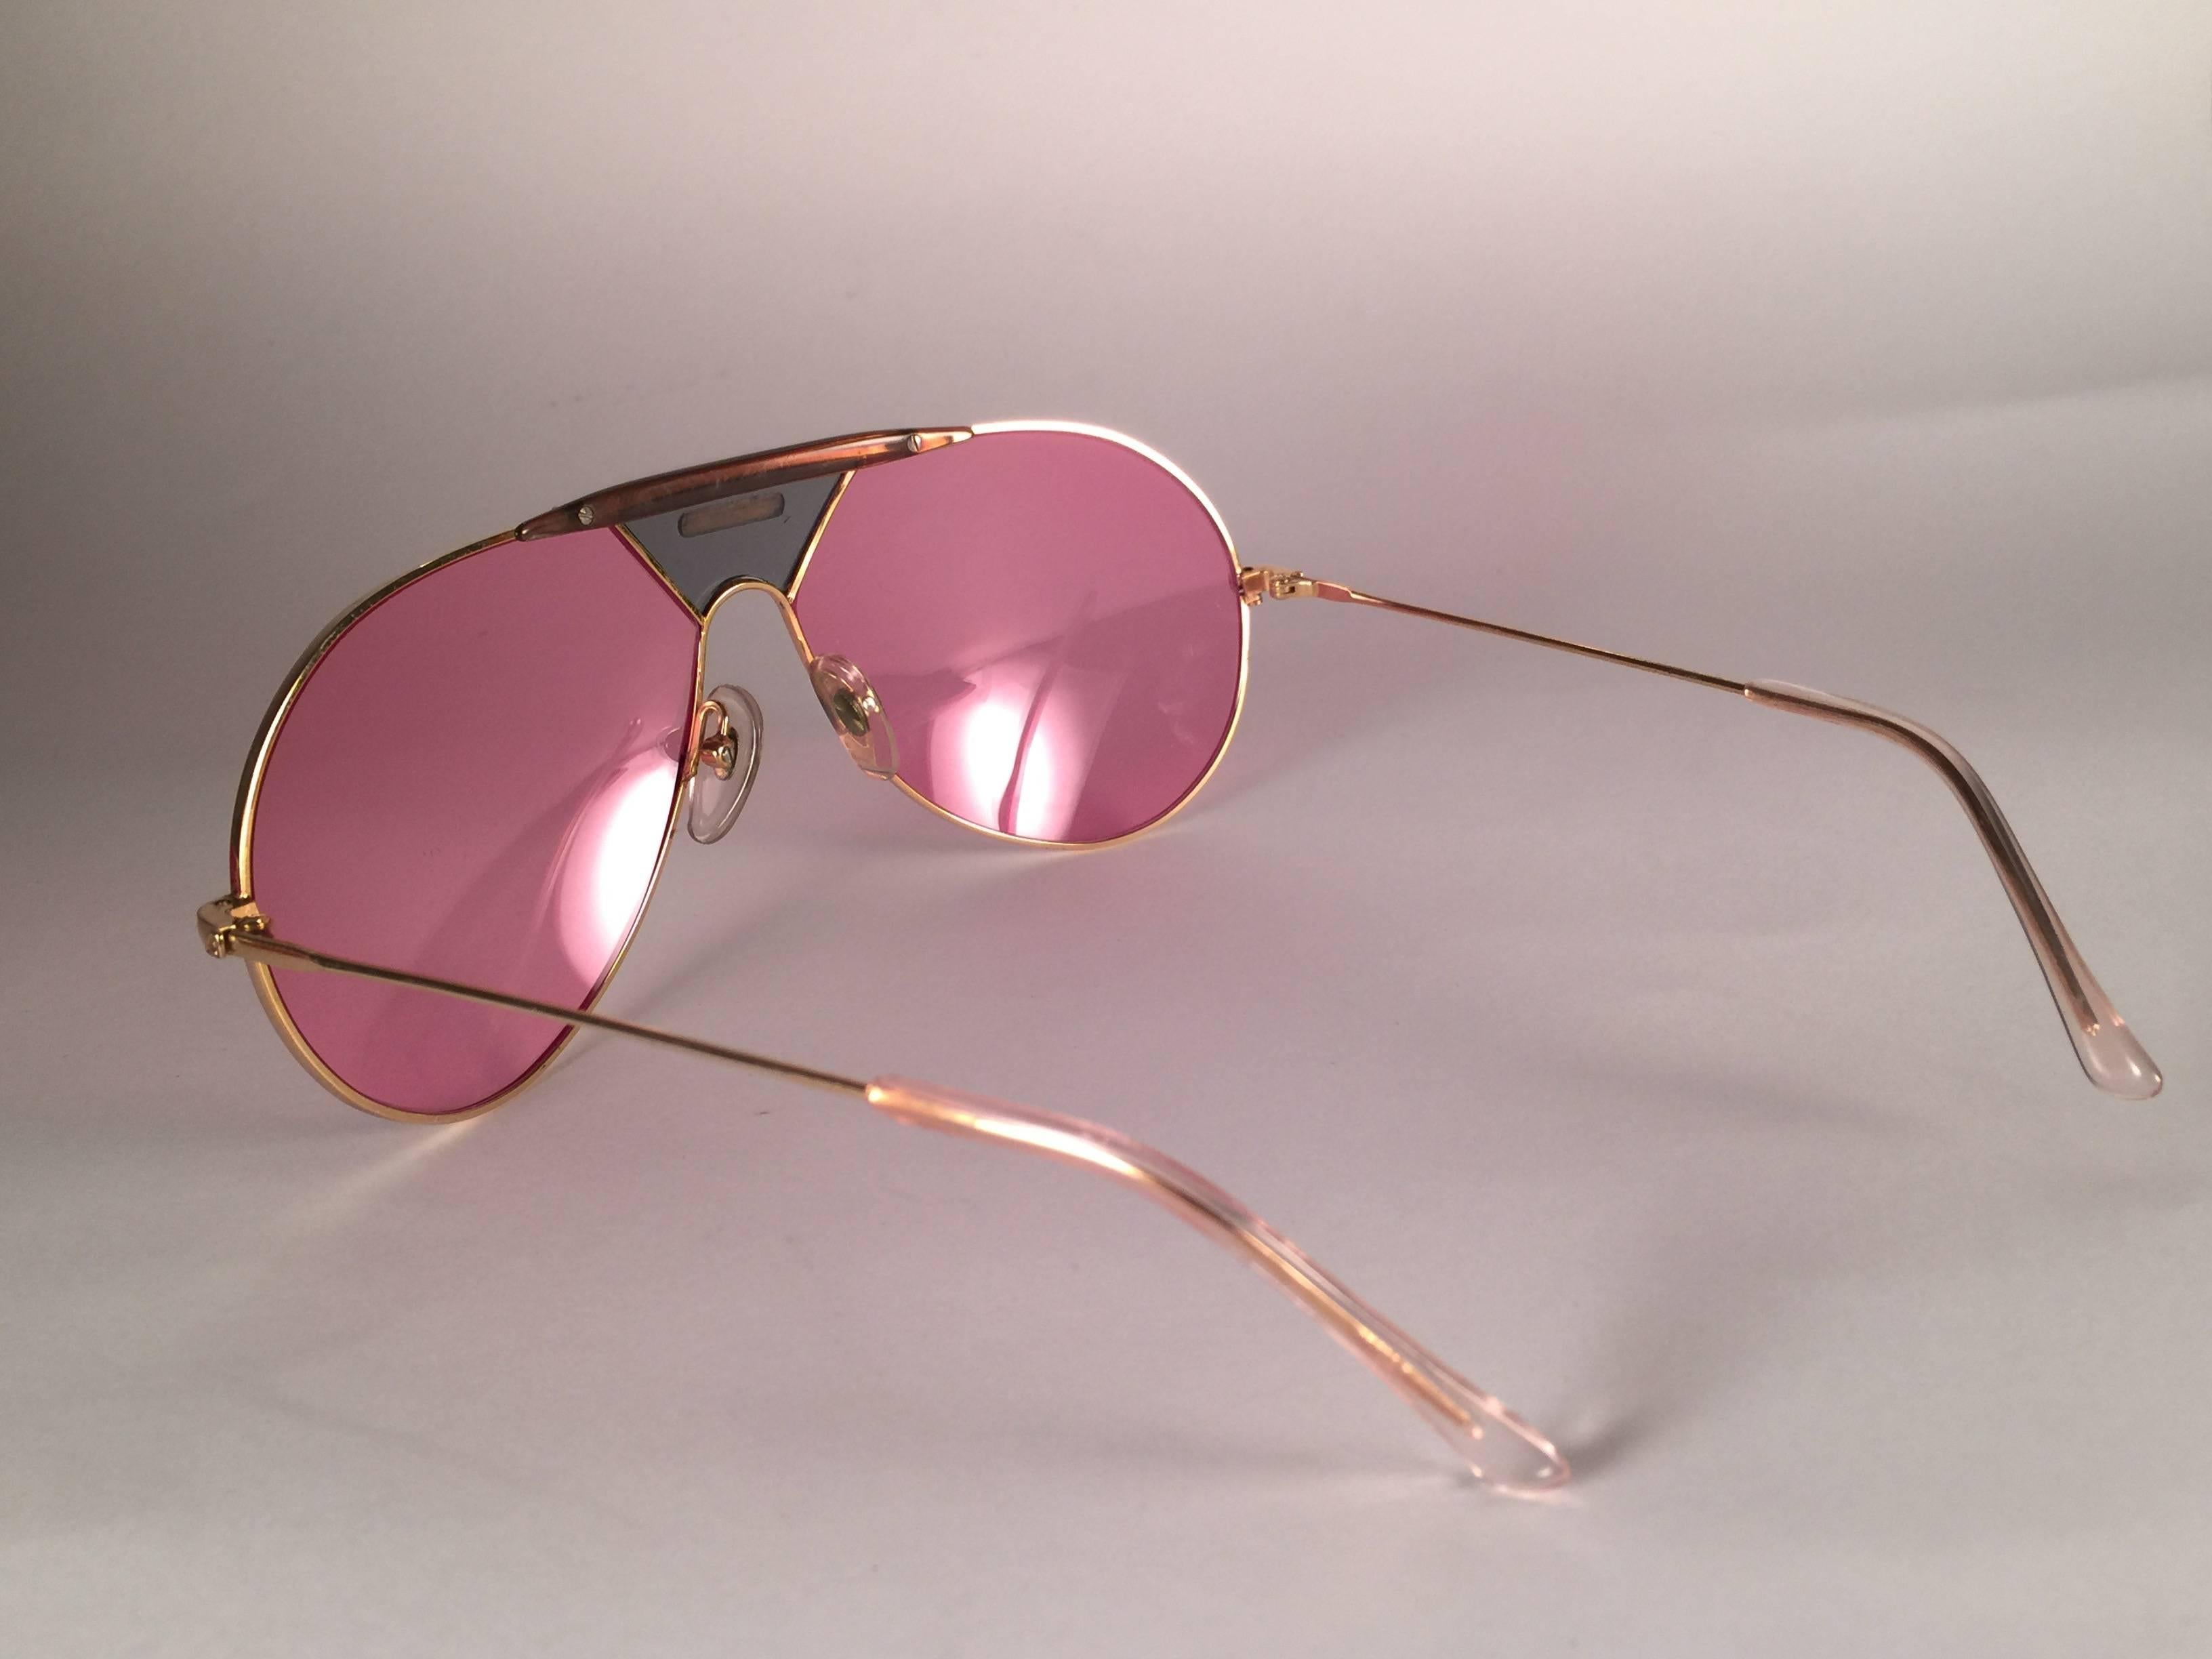 471866a8b48a3c New Vintage Alpina TR4 Aviator Gold and Green Miami Vice Don Johnson  Sunglasses at 1stdibs